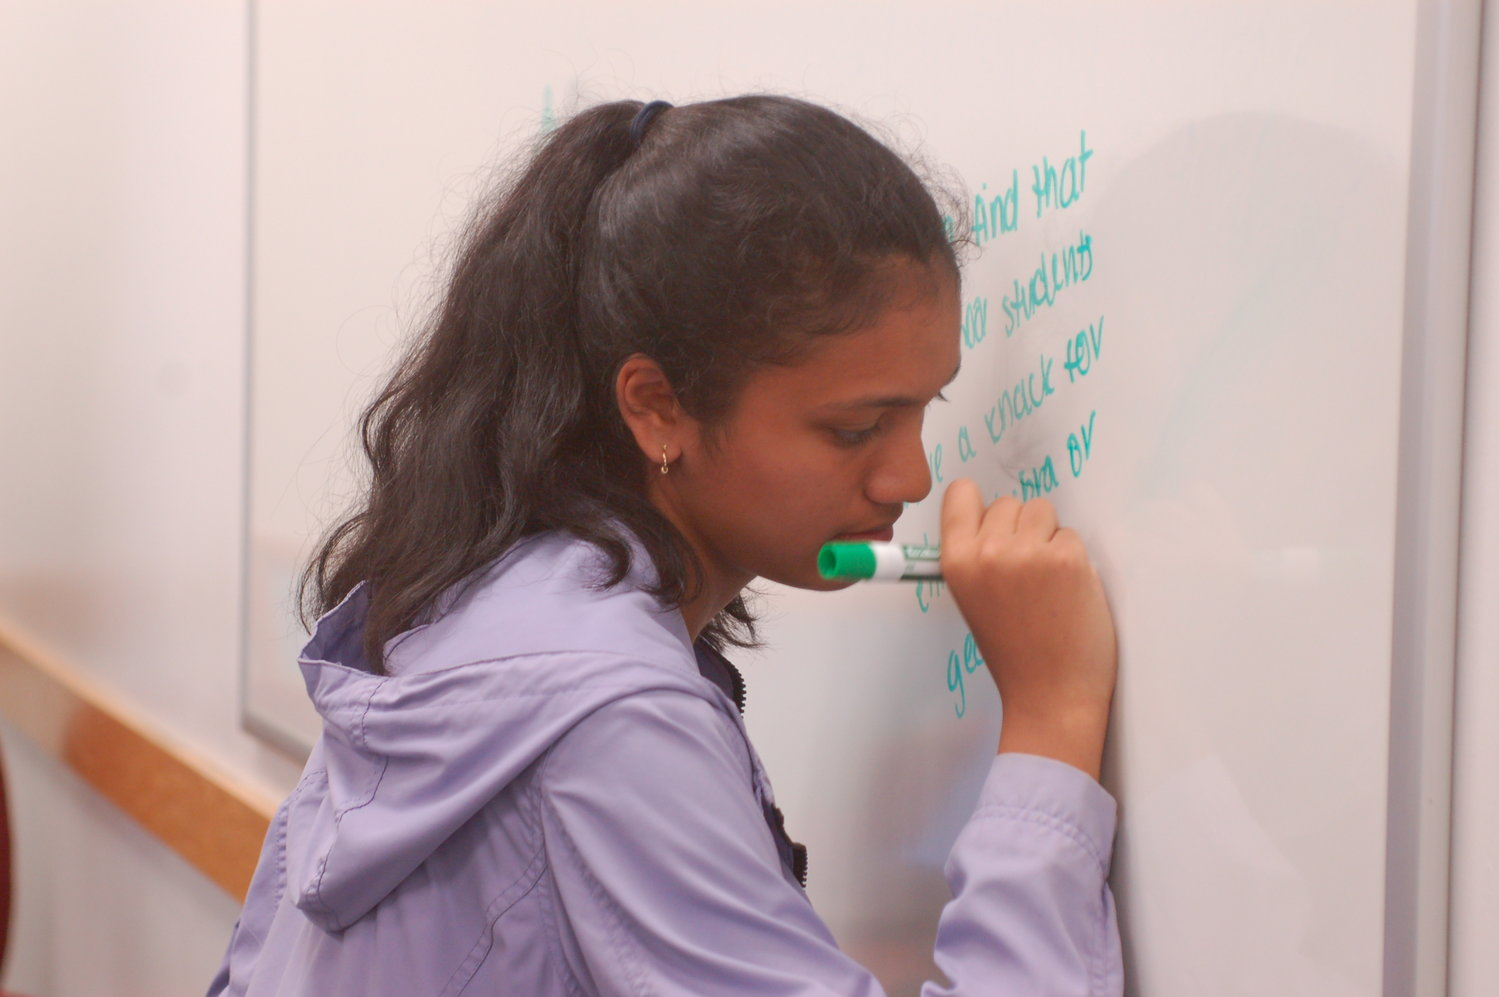 Aditi Mehta (sophomore, Bristol) serves as her team's scribe in an exercise that pitted two teams against each other in an effort to communicate information through the group.